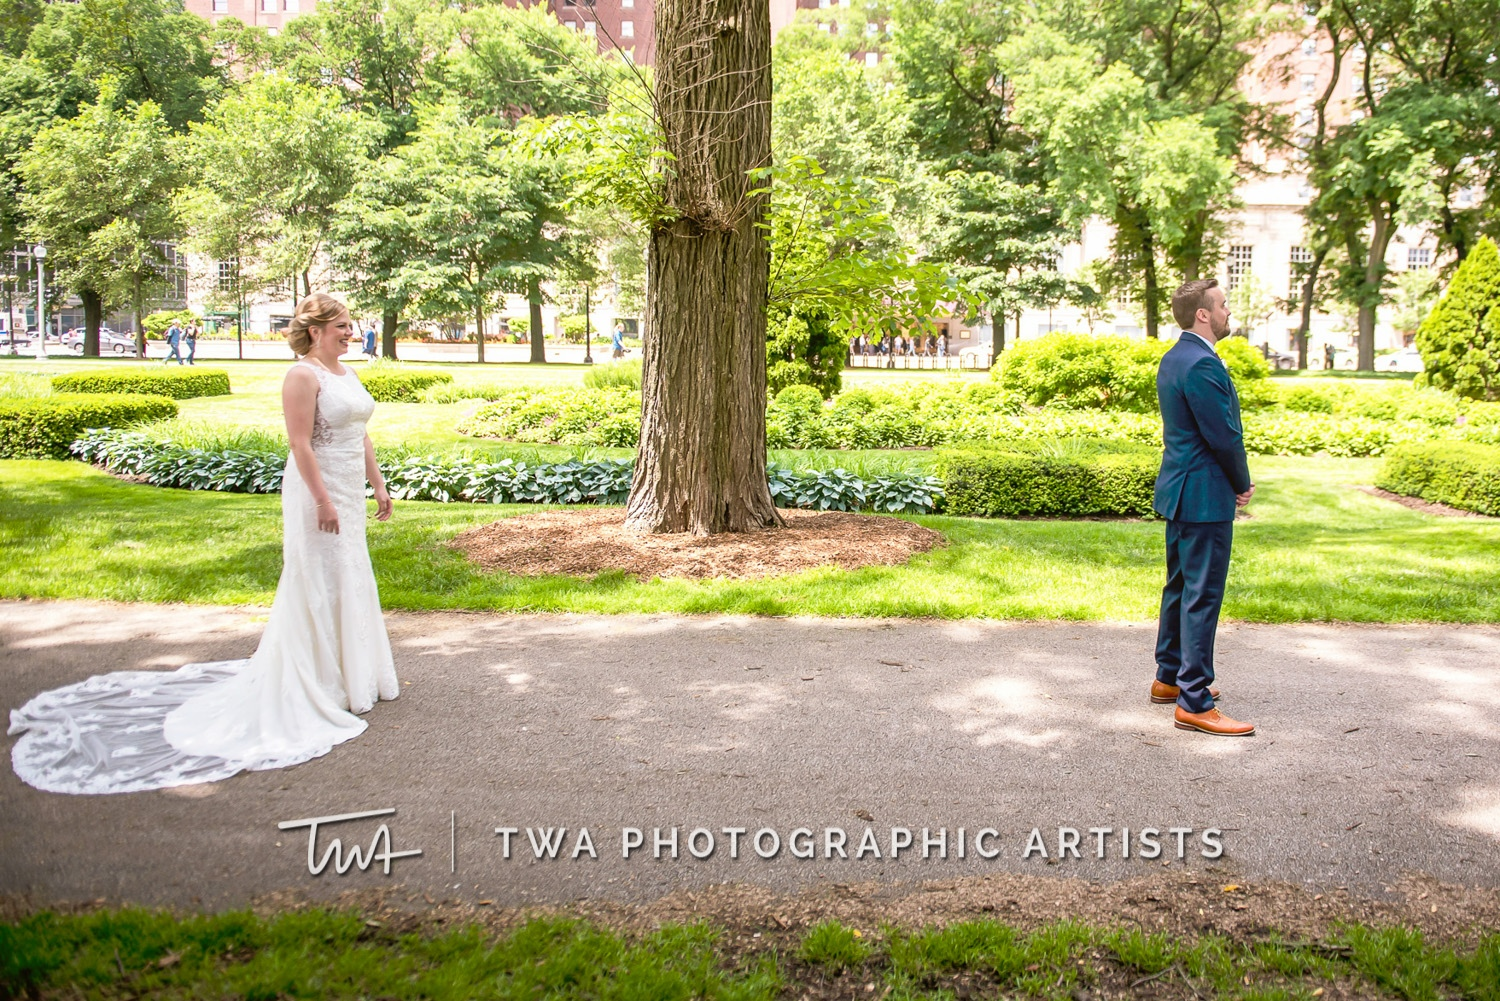 Chicago-Wedding-Photographer-TWA-Photographic-Artists-White-Pines-Banquets_Petersen_Sherman_ZZ_DL-014_0147